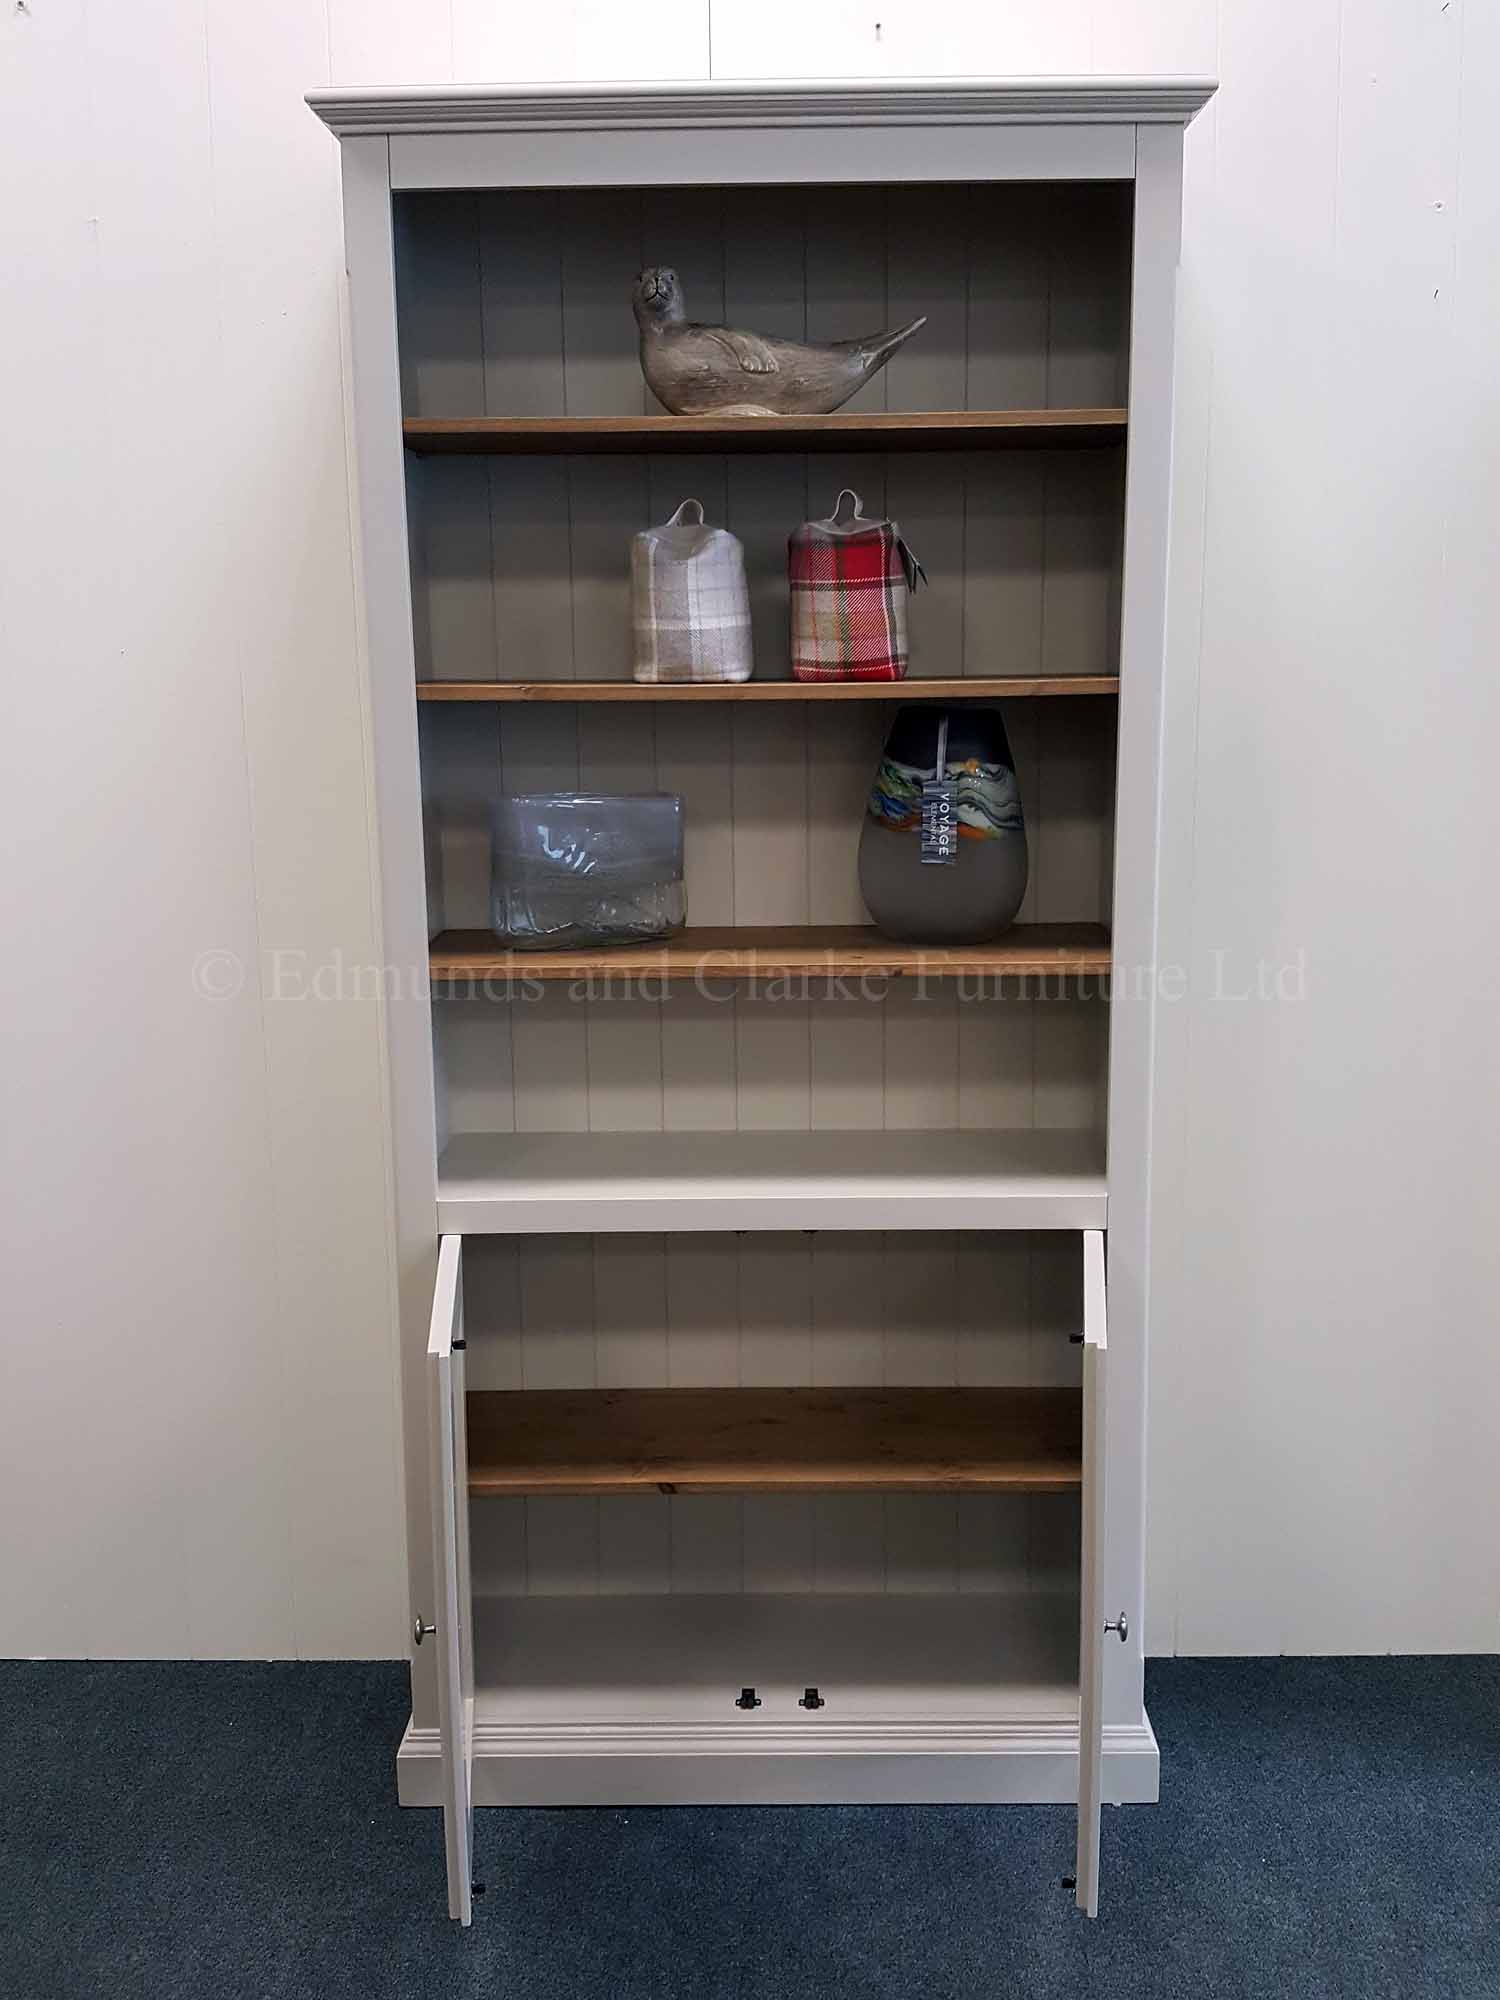 Edmunds painted two door bookcase adjustable shelves